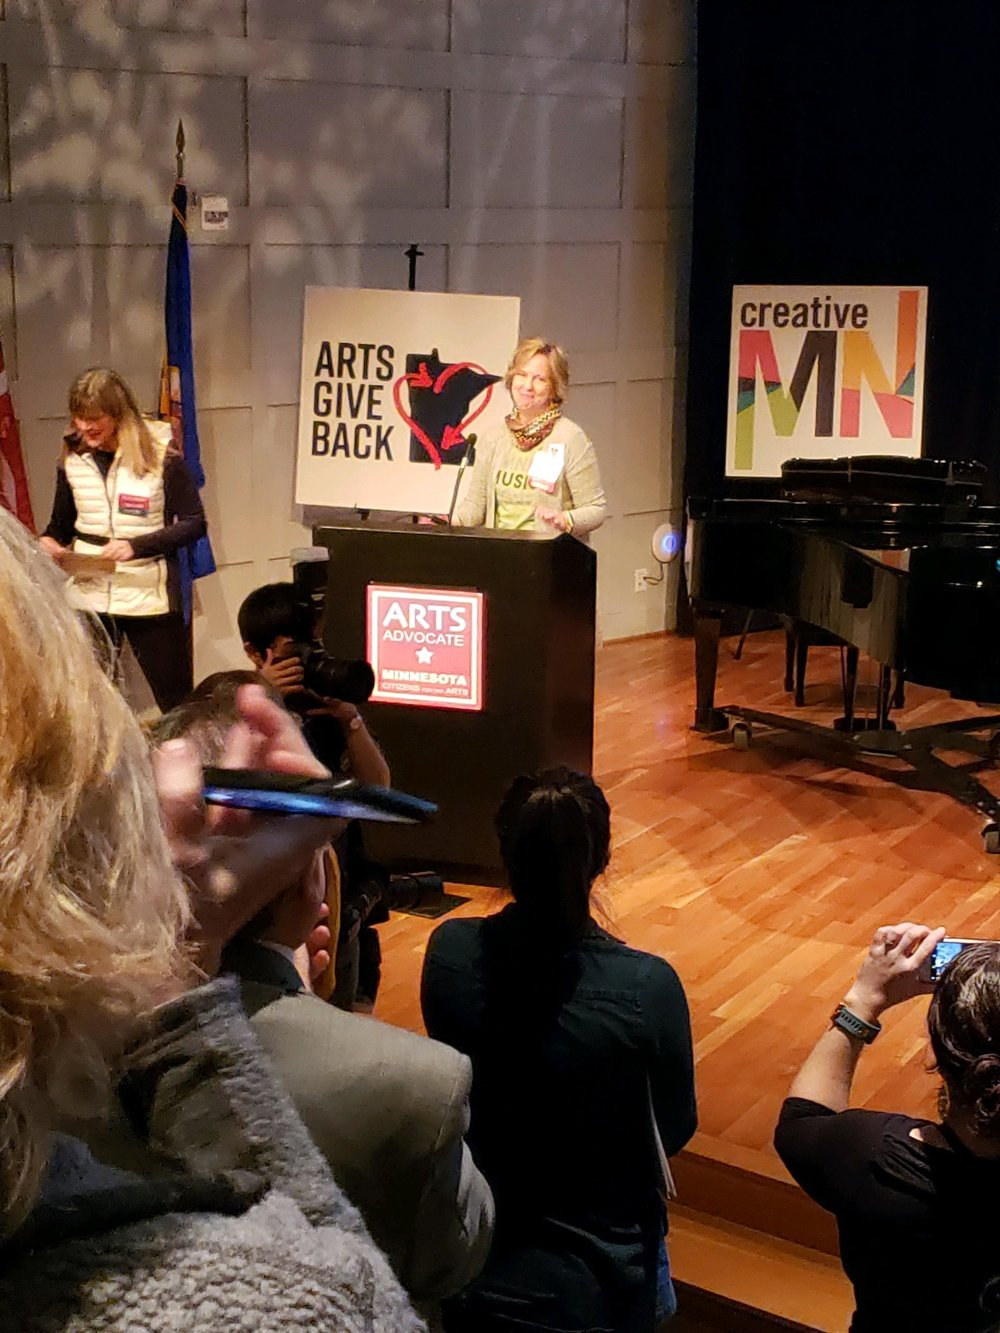 Holmes Theatre Executive Director Amy Stoller Stearns addresses the crowd at the Minnesota History Center after being presented with the Larry Award at Arts Advocacy Day on Tuesday, March 12 in St. Paul. (Submitted photo)